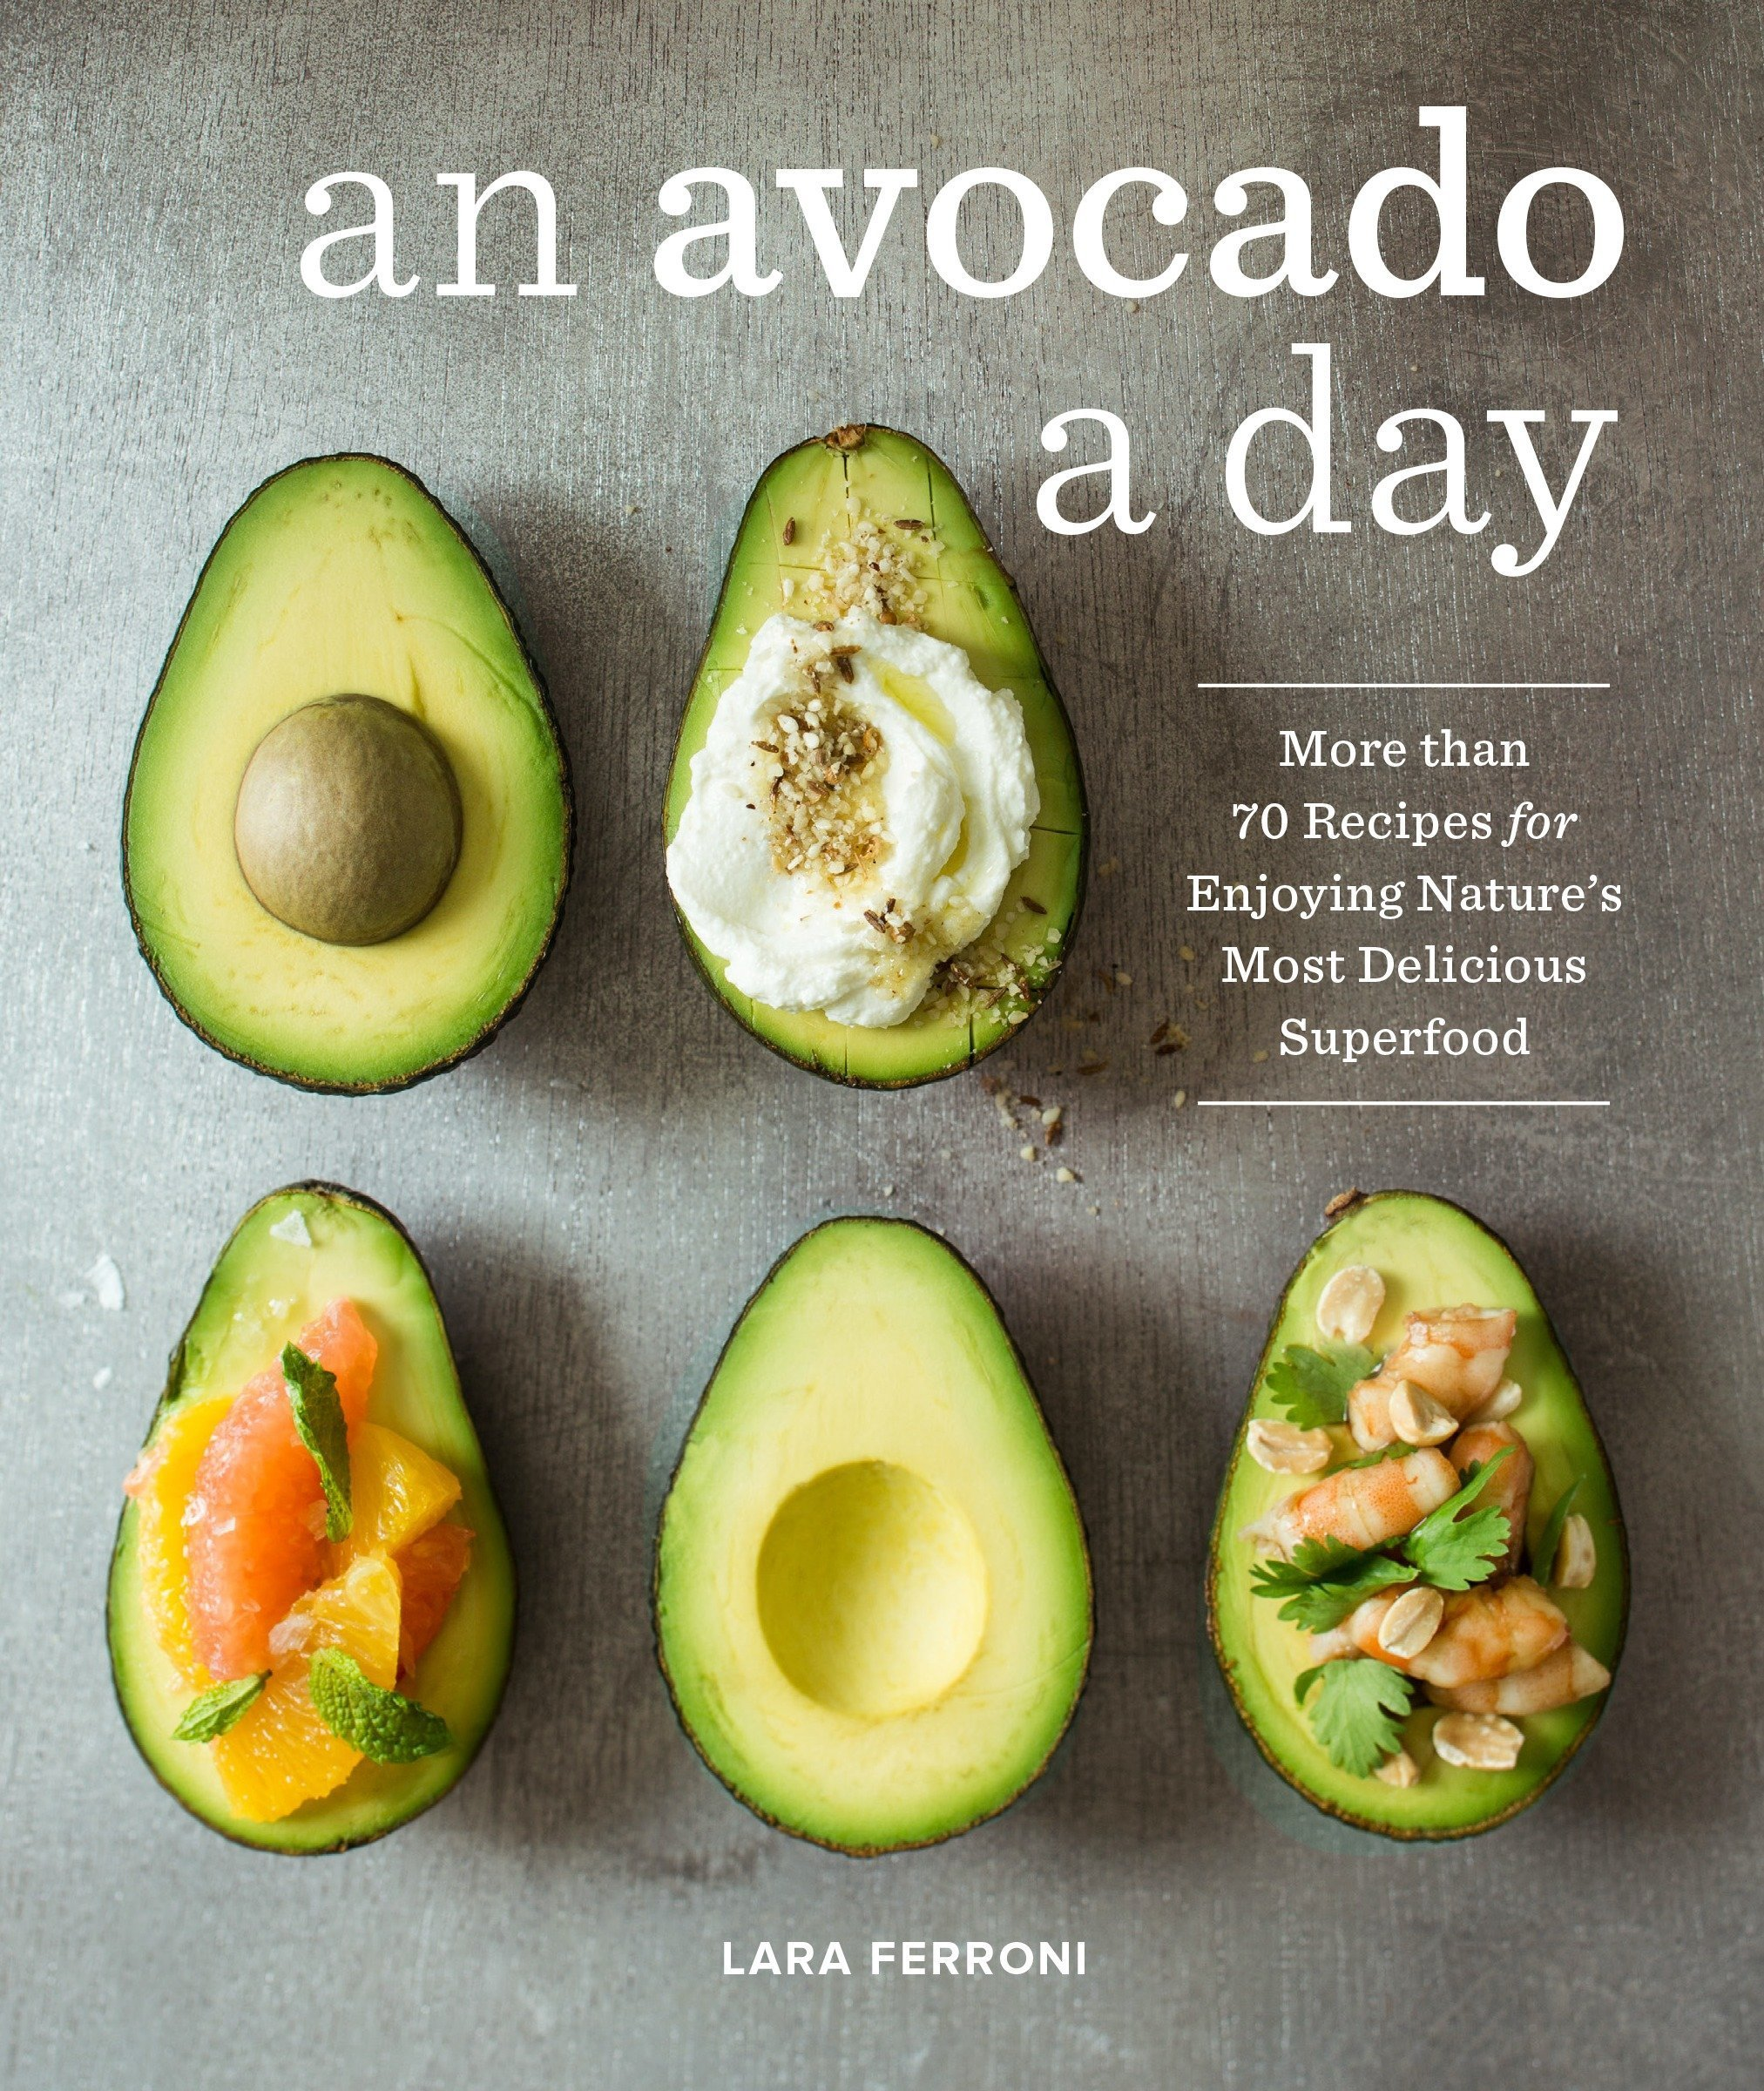 an avocado a day book